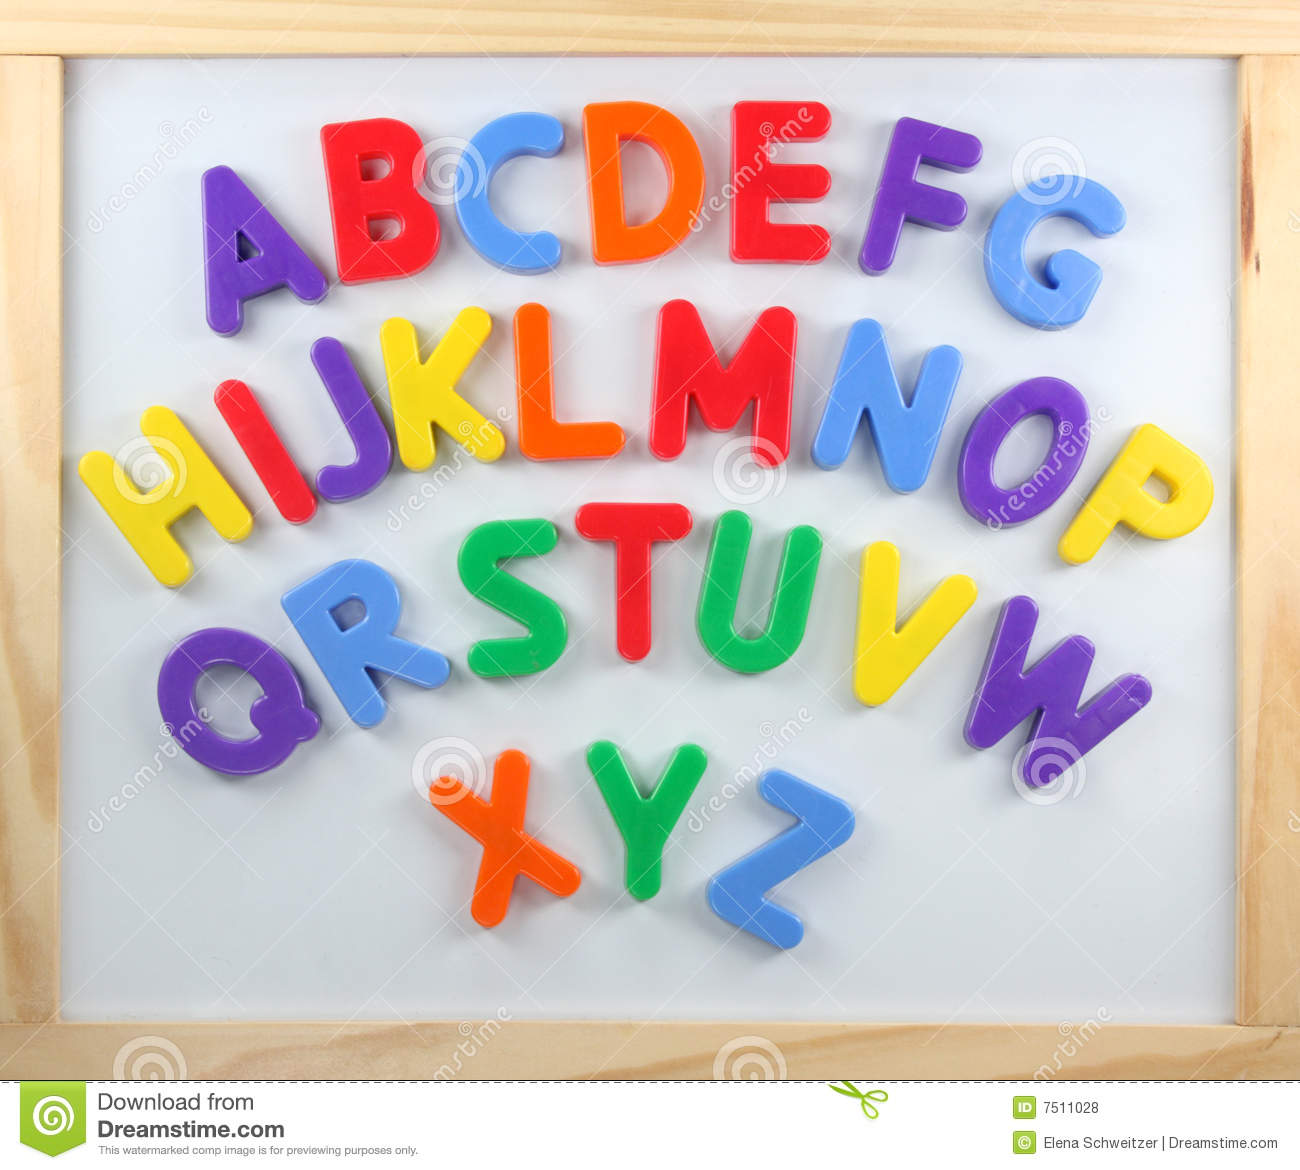 spanish plastic magnetic letters. 120 piece magnetic letters.